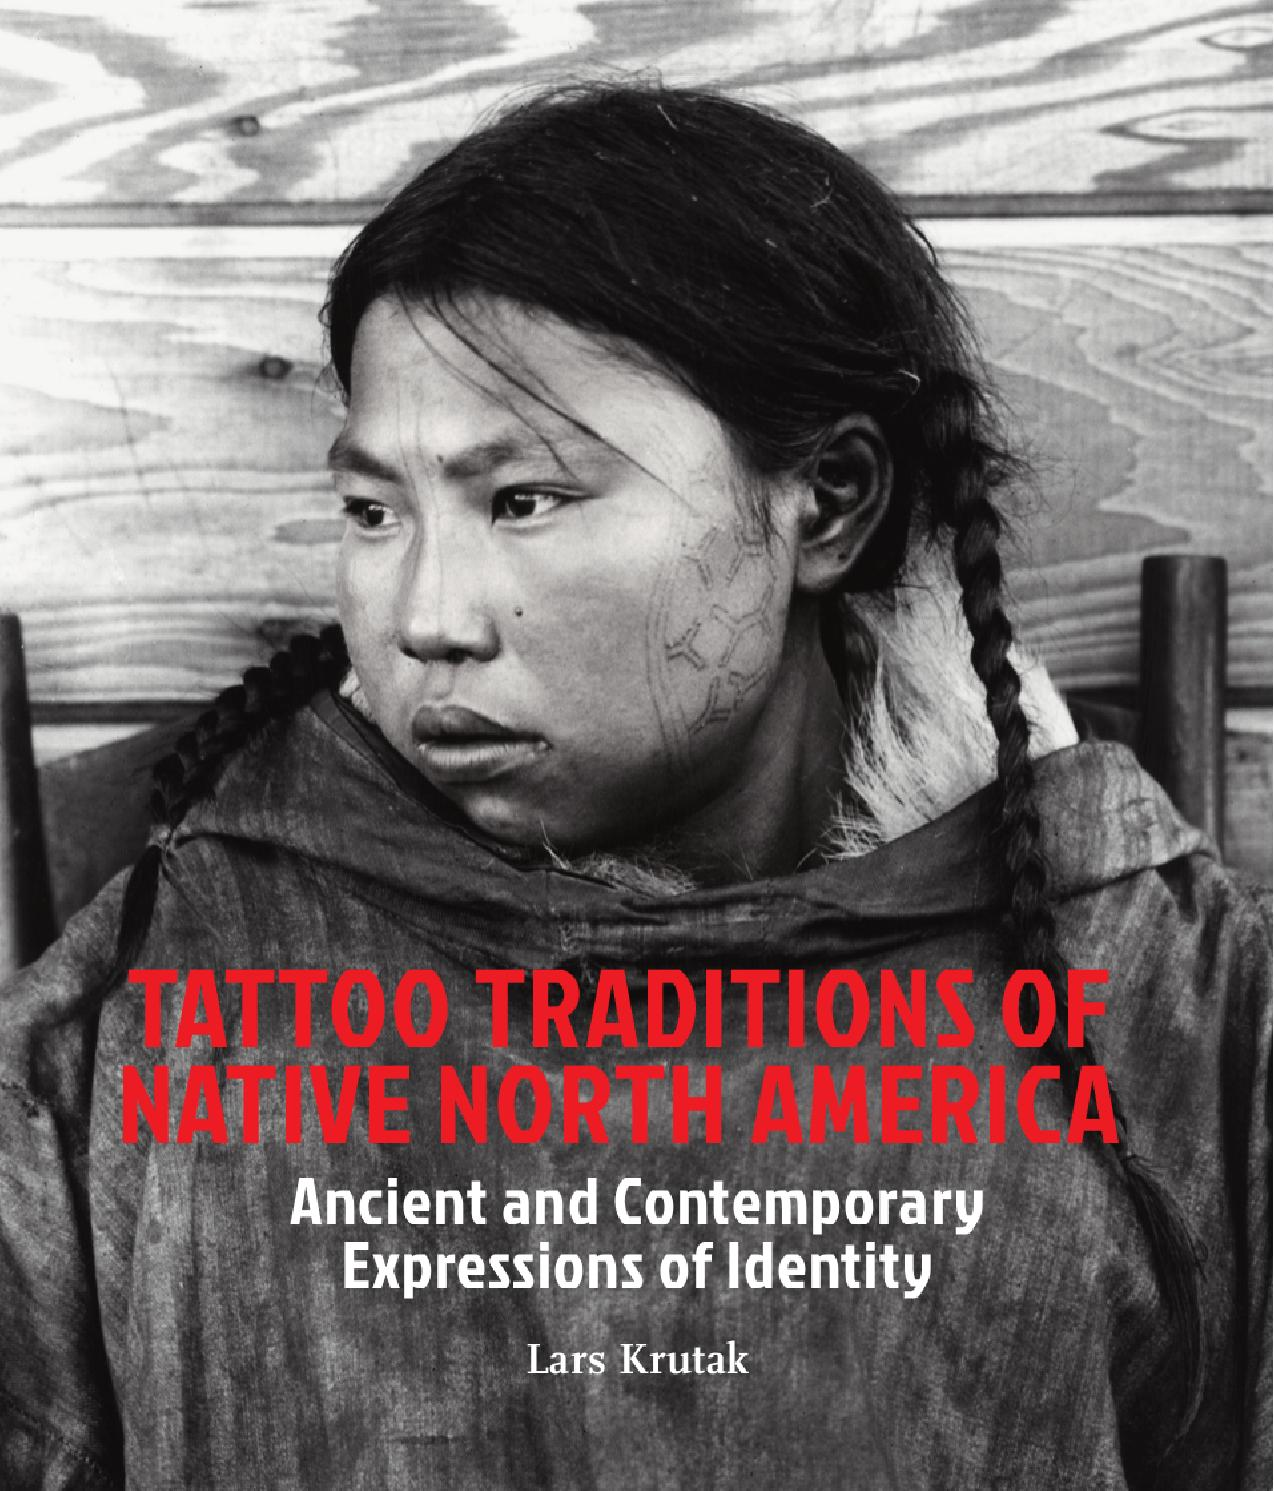 Tattoo traditions of native north america by lm publishers issuu buycottarizona